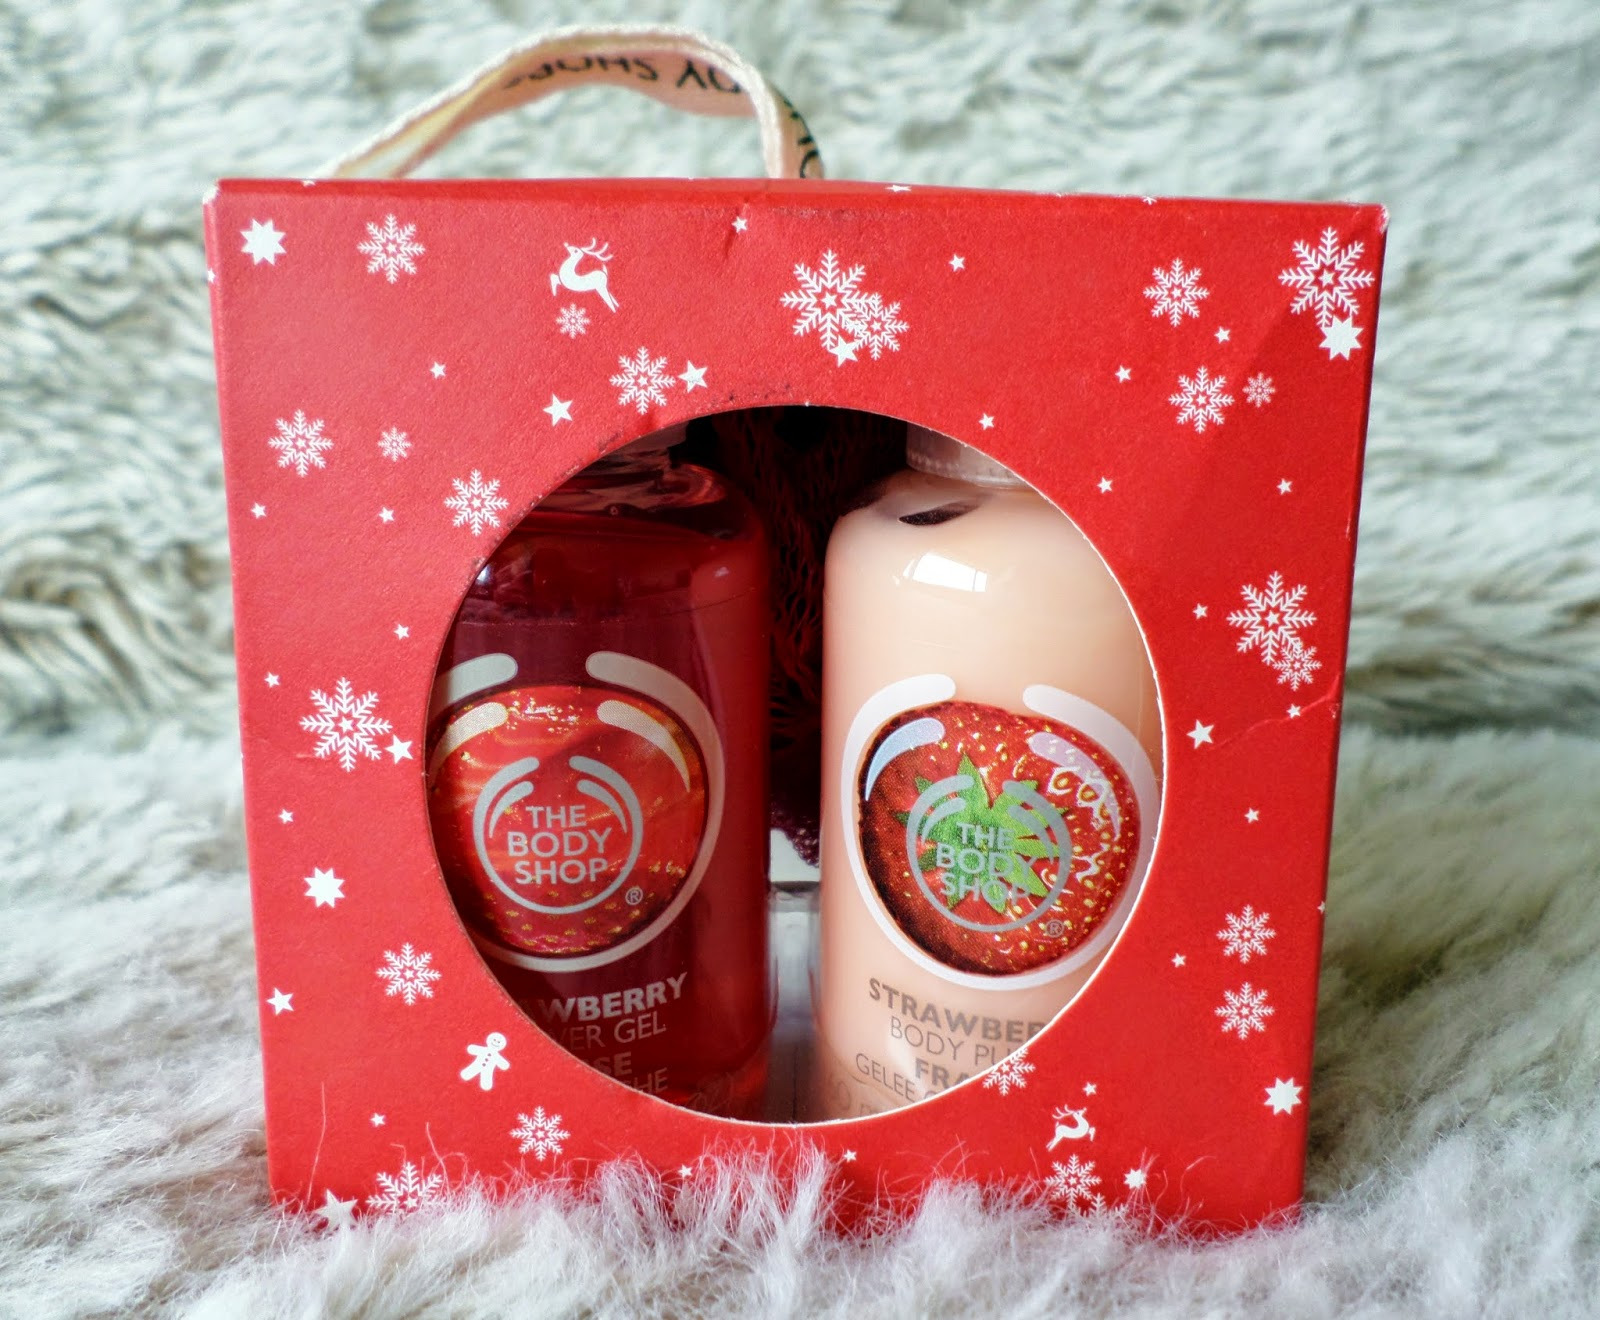 The Body Shop Mini Strawberry Gift Set